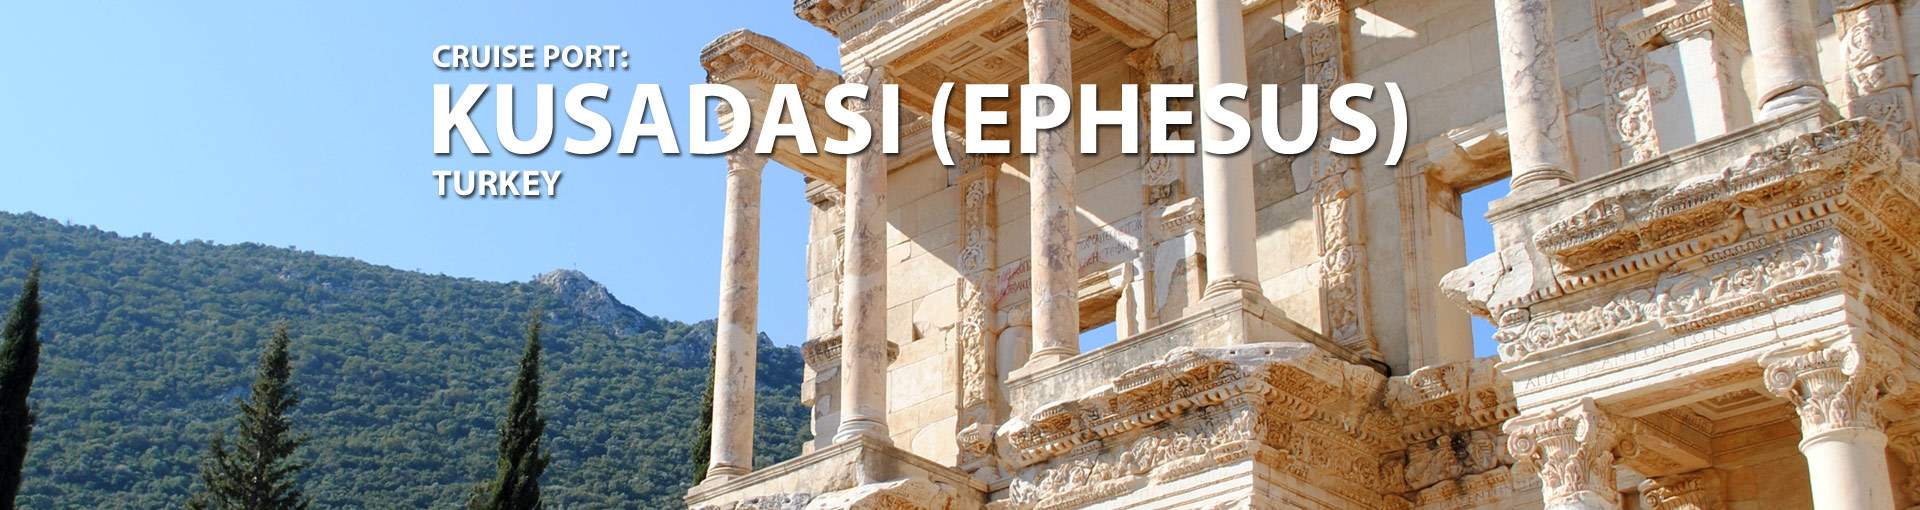 Cruises to Kusadasi (Ephesus), Turkey